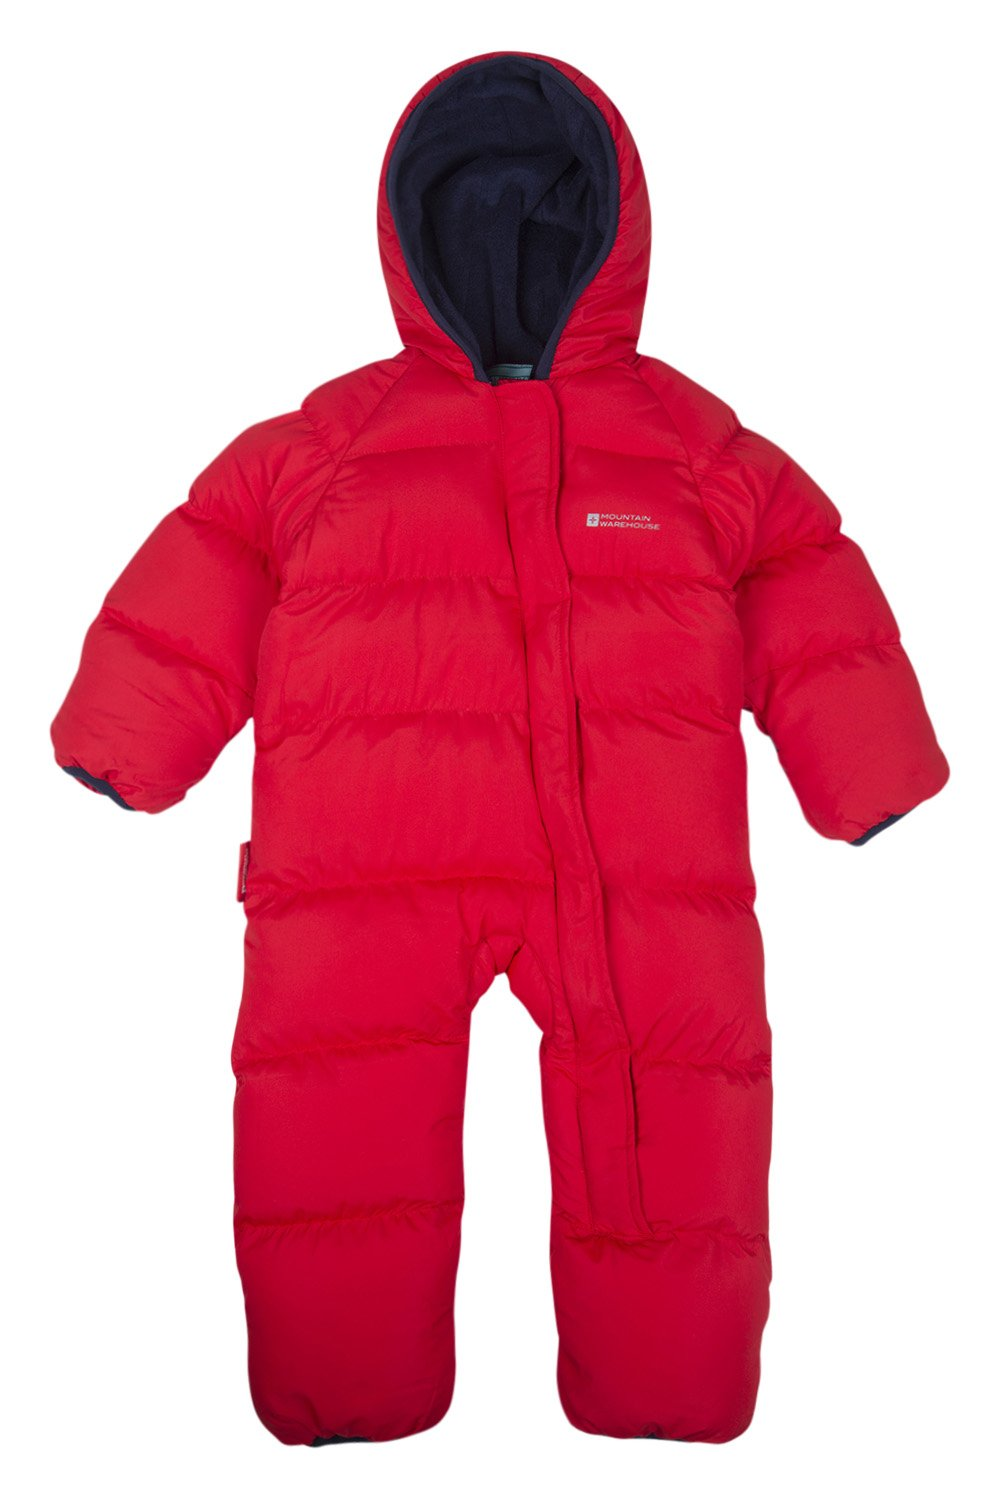 Mountain Warehouse Frosty Junior Padded Suit - Fleece Lined for Warmth